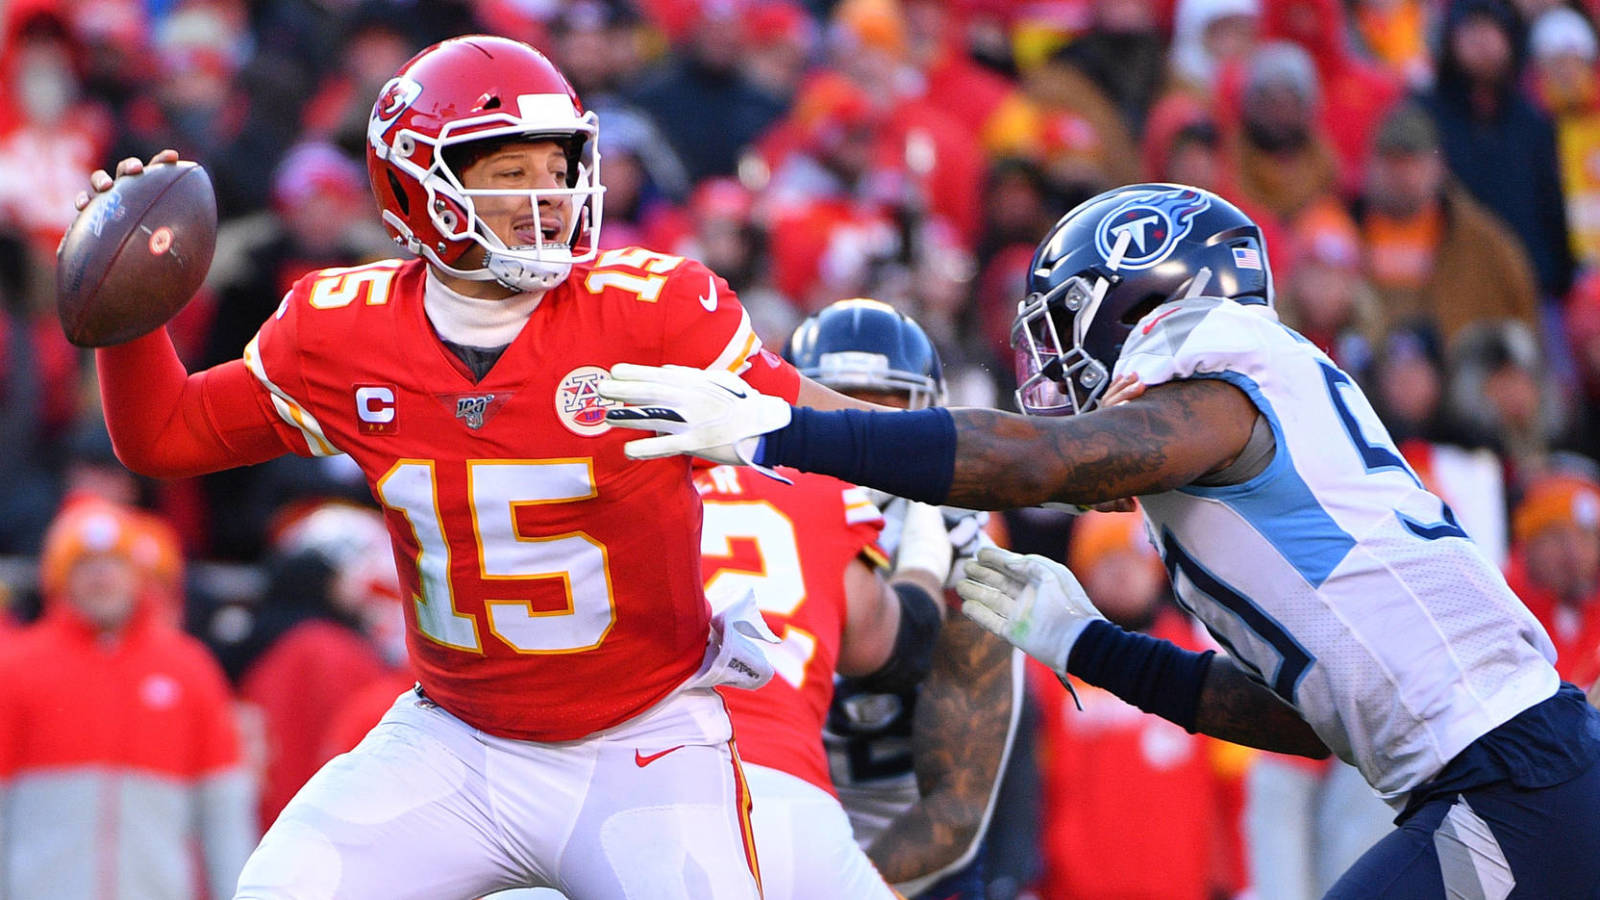 Every throw graded: An ultimate scouting report of Patrick Mahomes